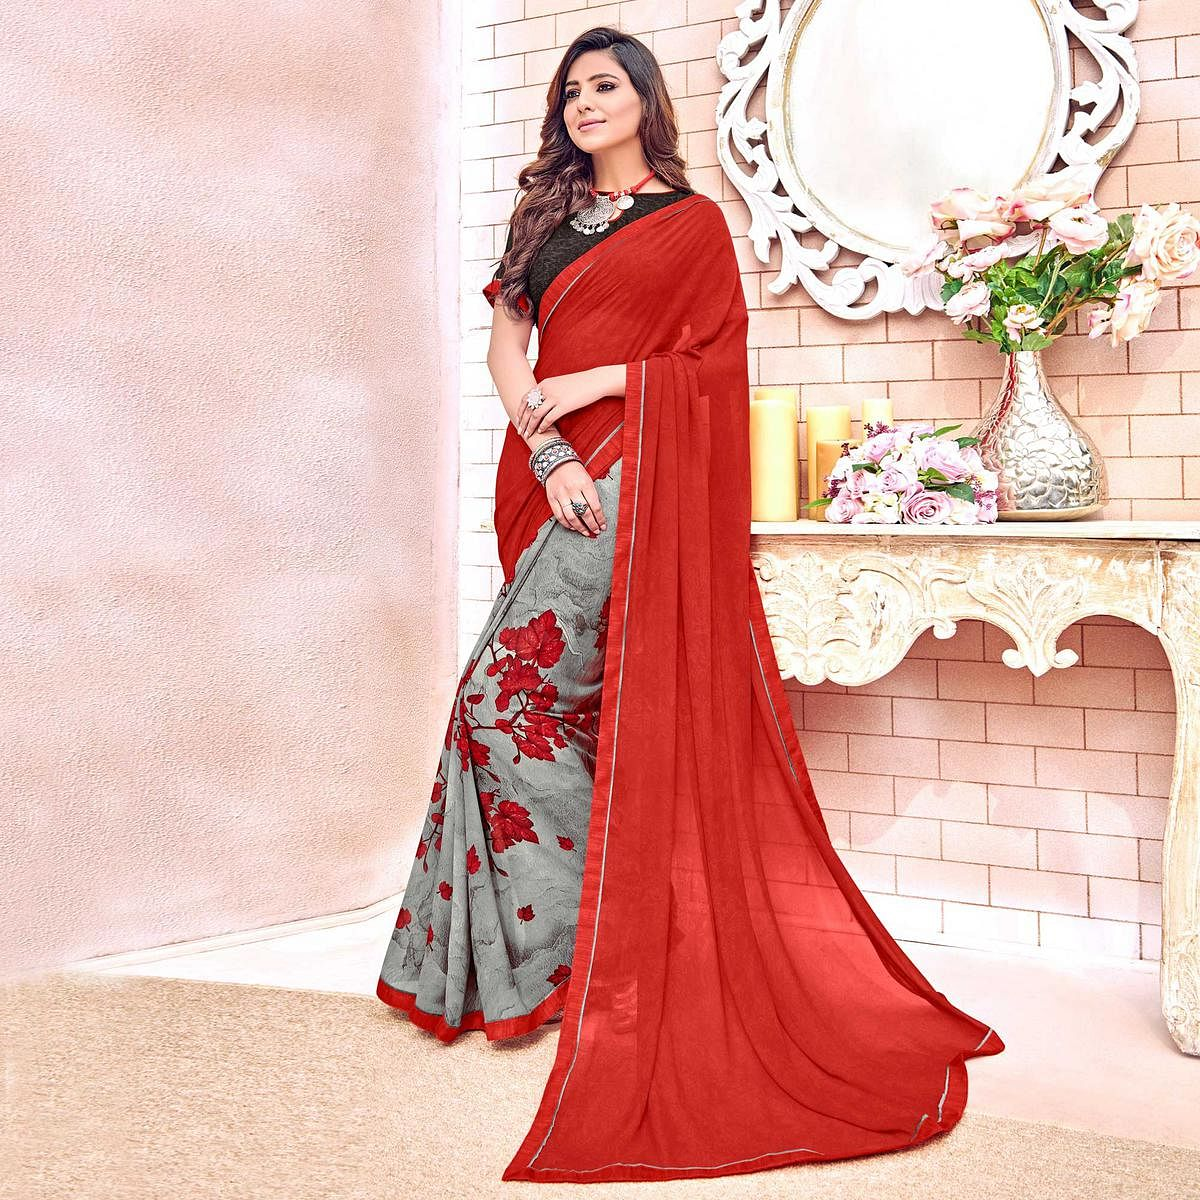 Charming Red Colored Designer Digital Printed Georgette Saree